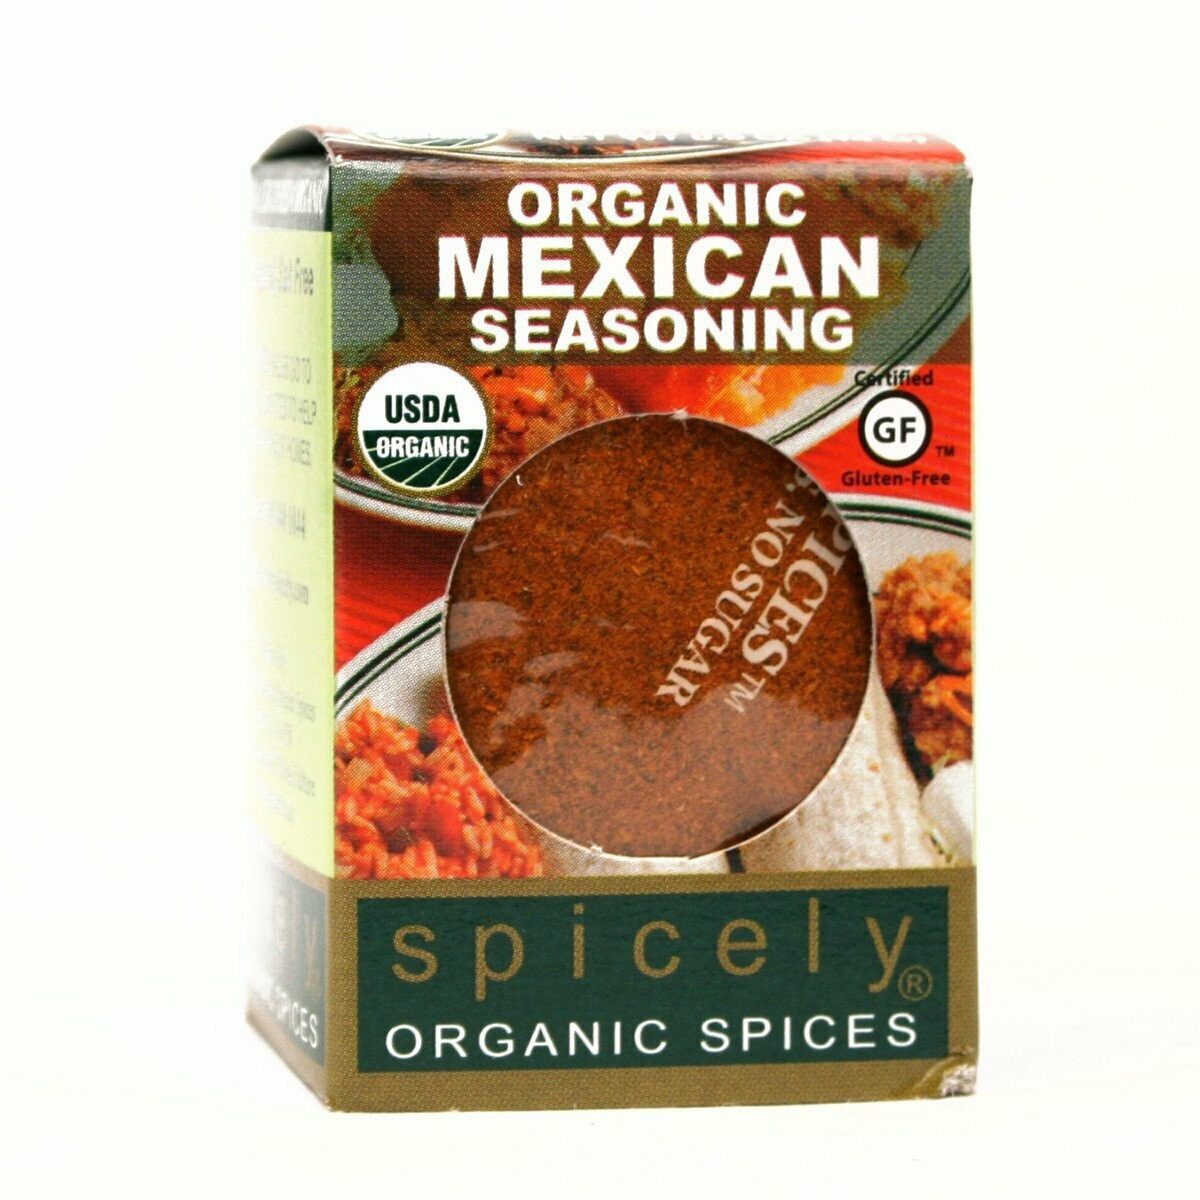 Organic Mexican Seasoning